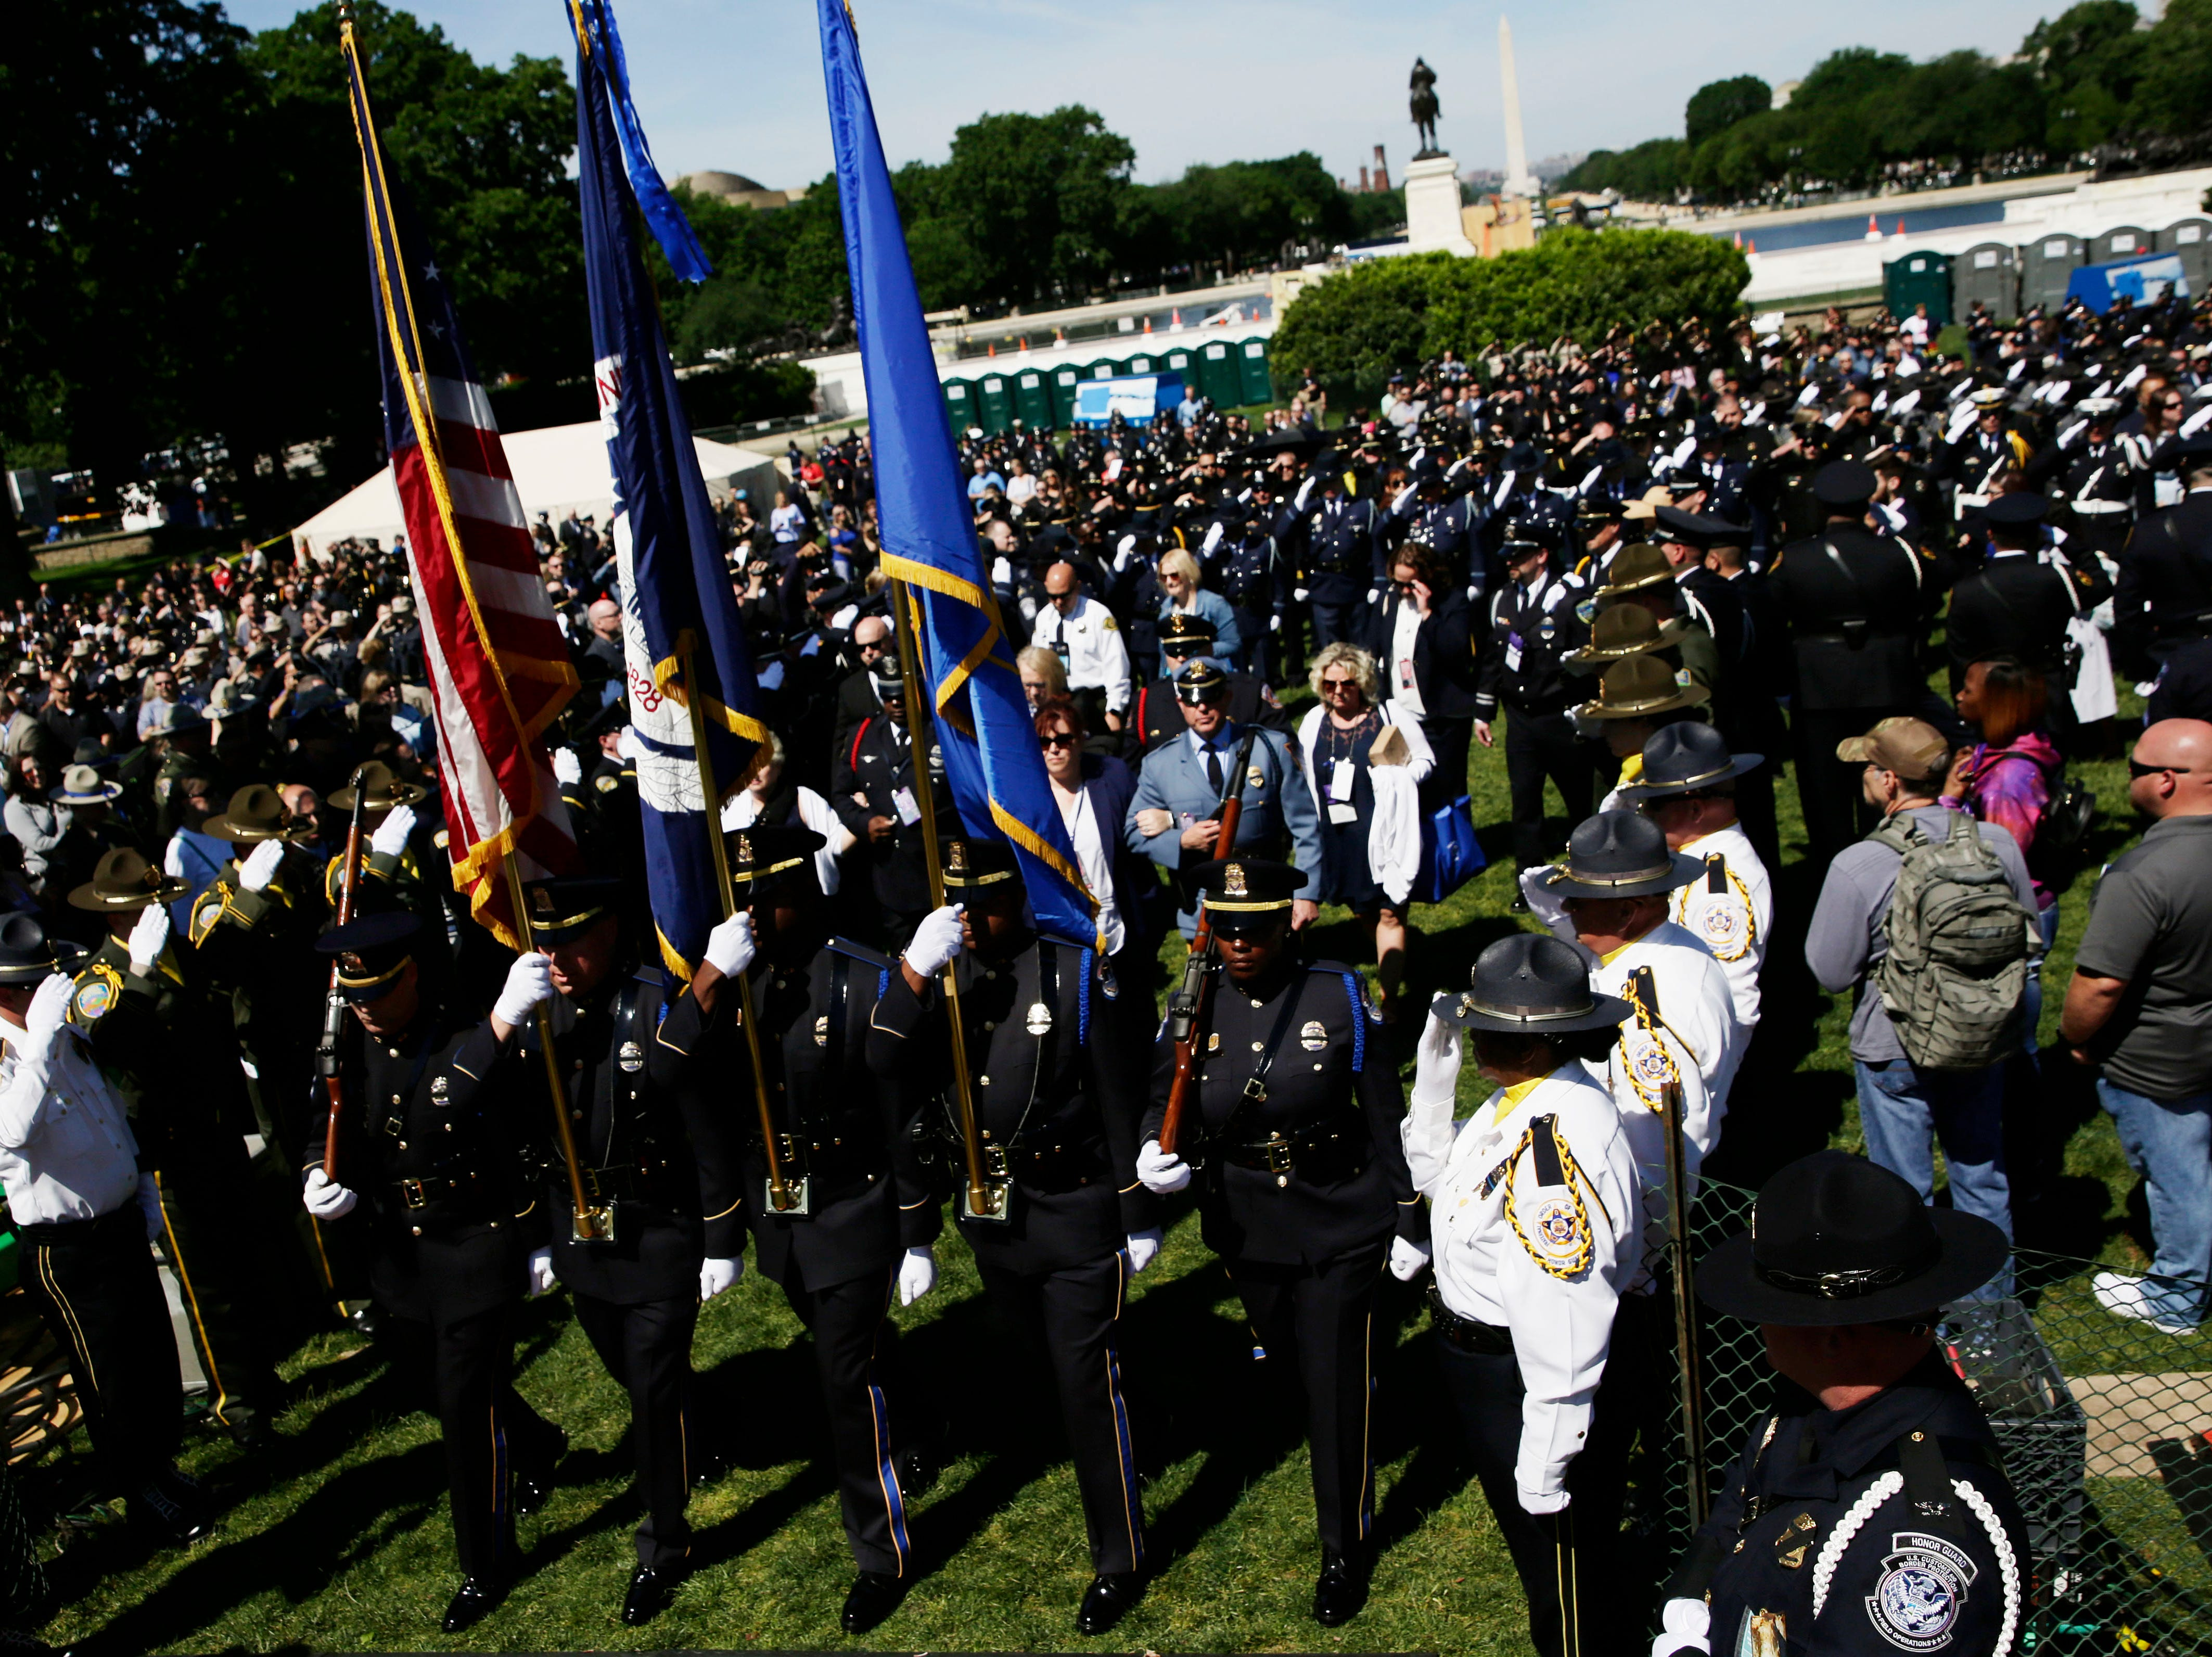 Led by color guards, family members of fallen officers arrive at the 38th Annual National Peace Officers Memorial Service at the west front of the Capitol in Washington, D.C.